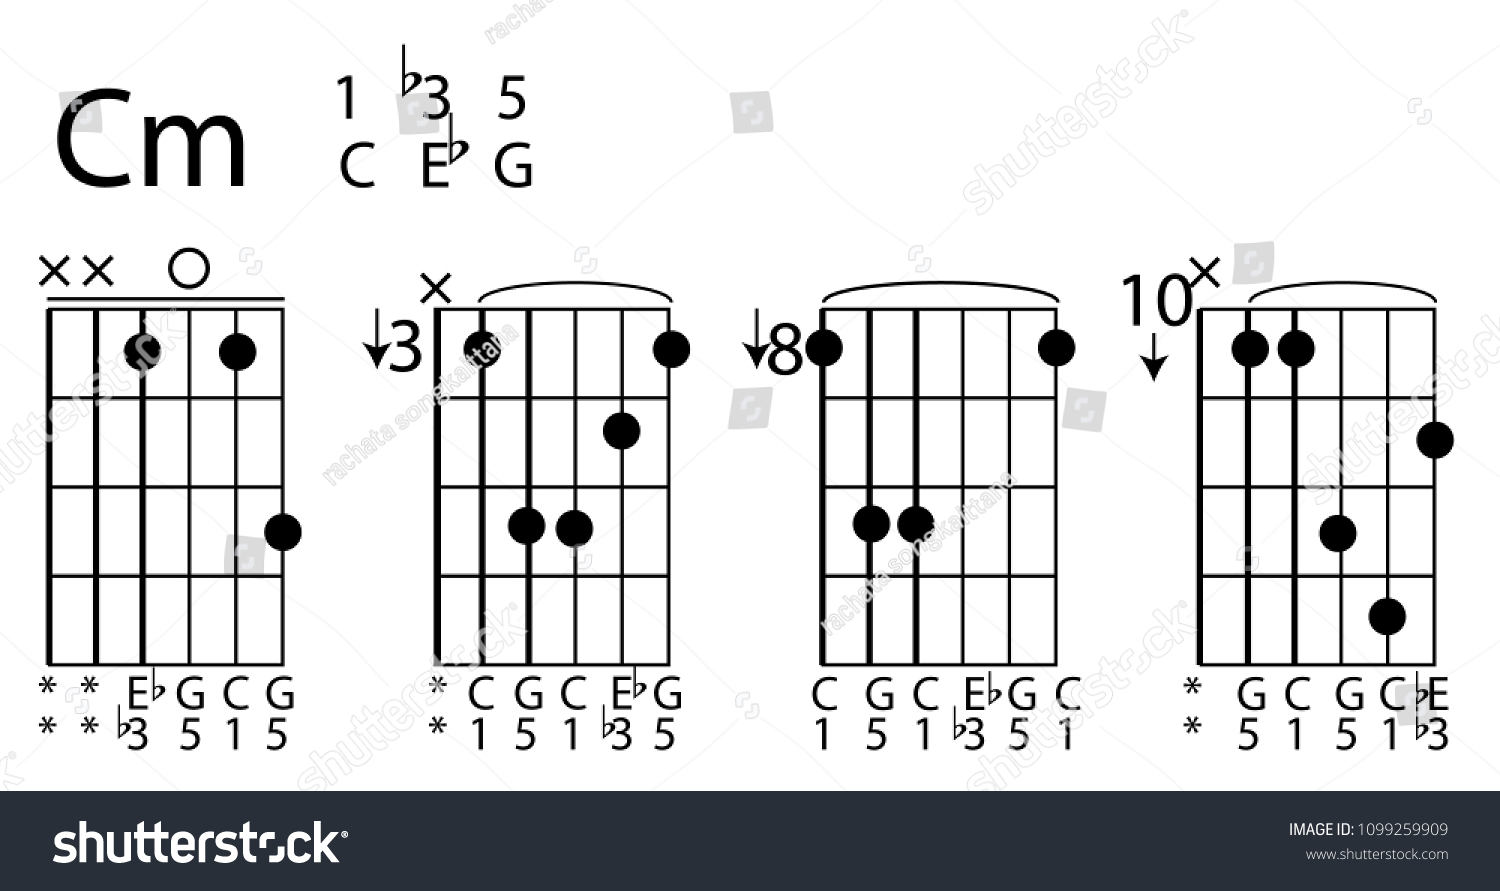 Cm Chord Guitar Vector Stock Vector Royalty Free 1099259909